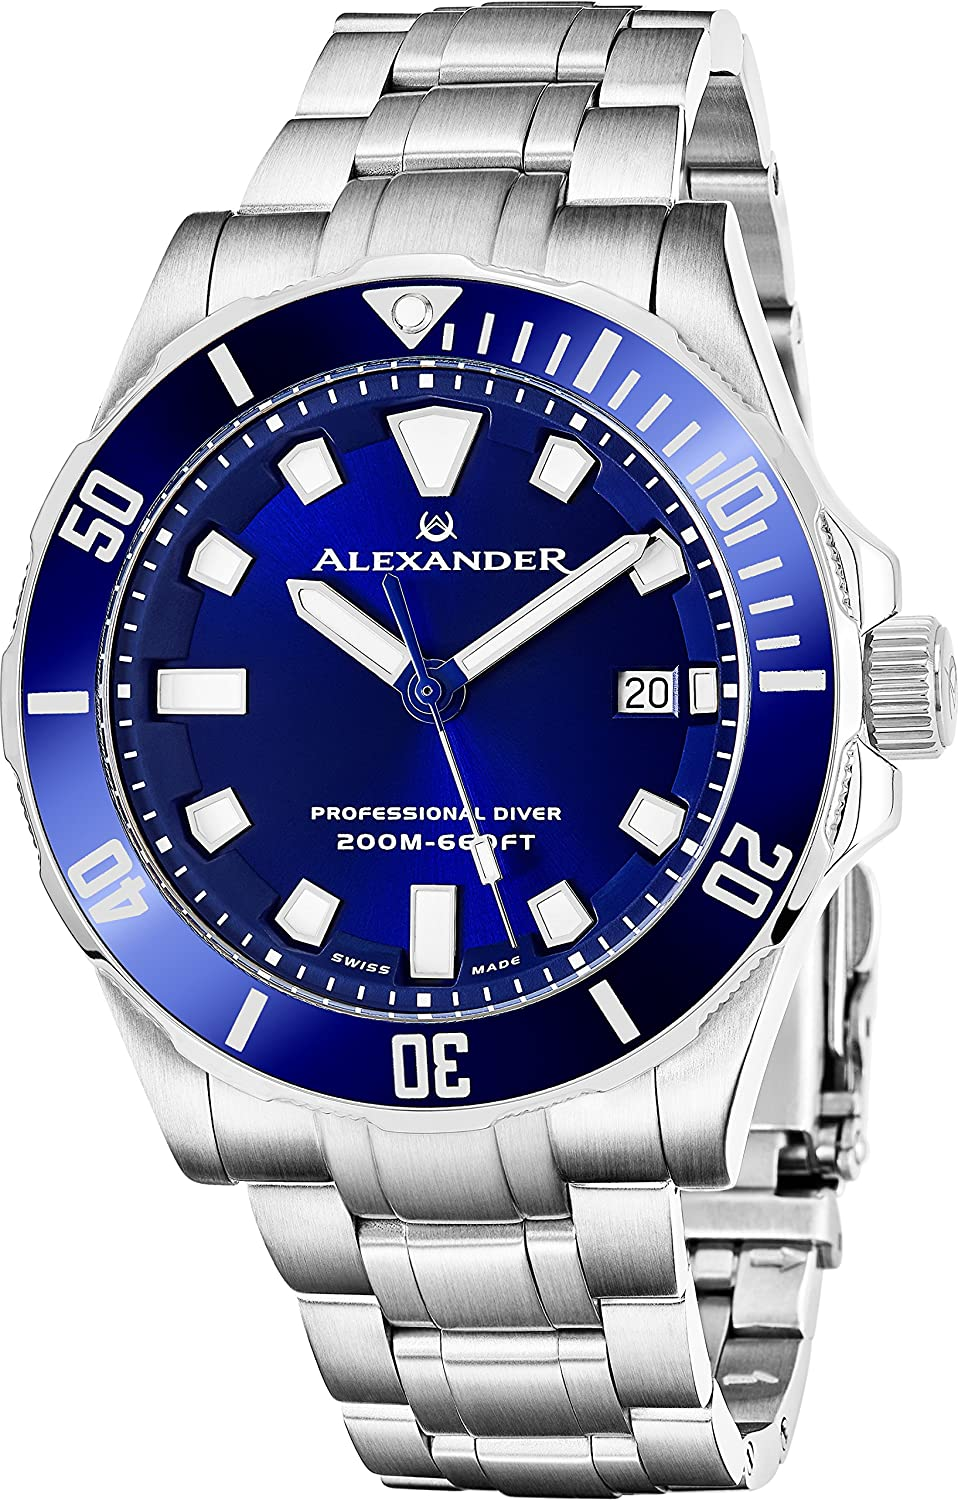 1cca87d6088 Amazon.com  Alexander Professional Diver Watch Mens Blue Face Sapphire  Crystal 200M Waterproof - Swiss Made Analog Quartz Dive Watch for Men Scuba  Diving ...